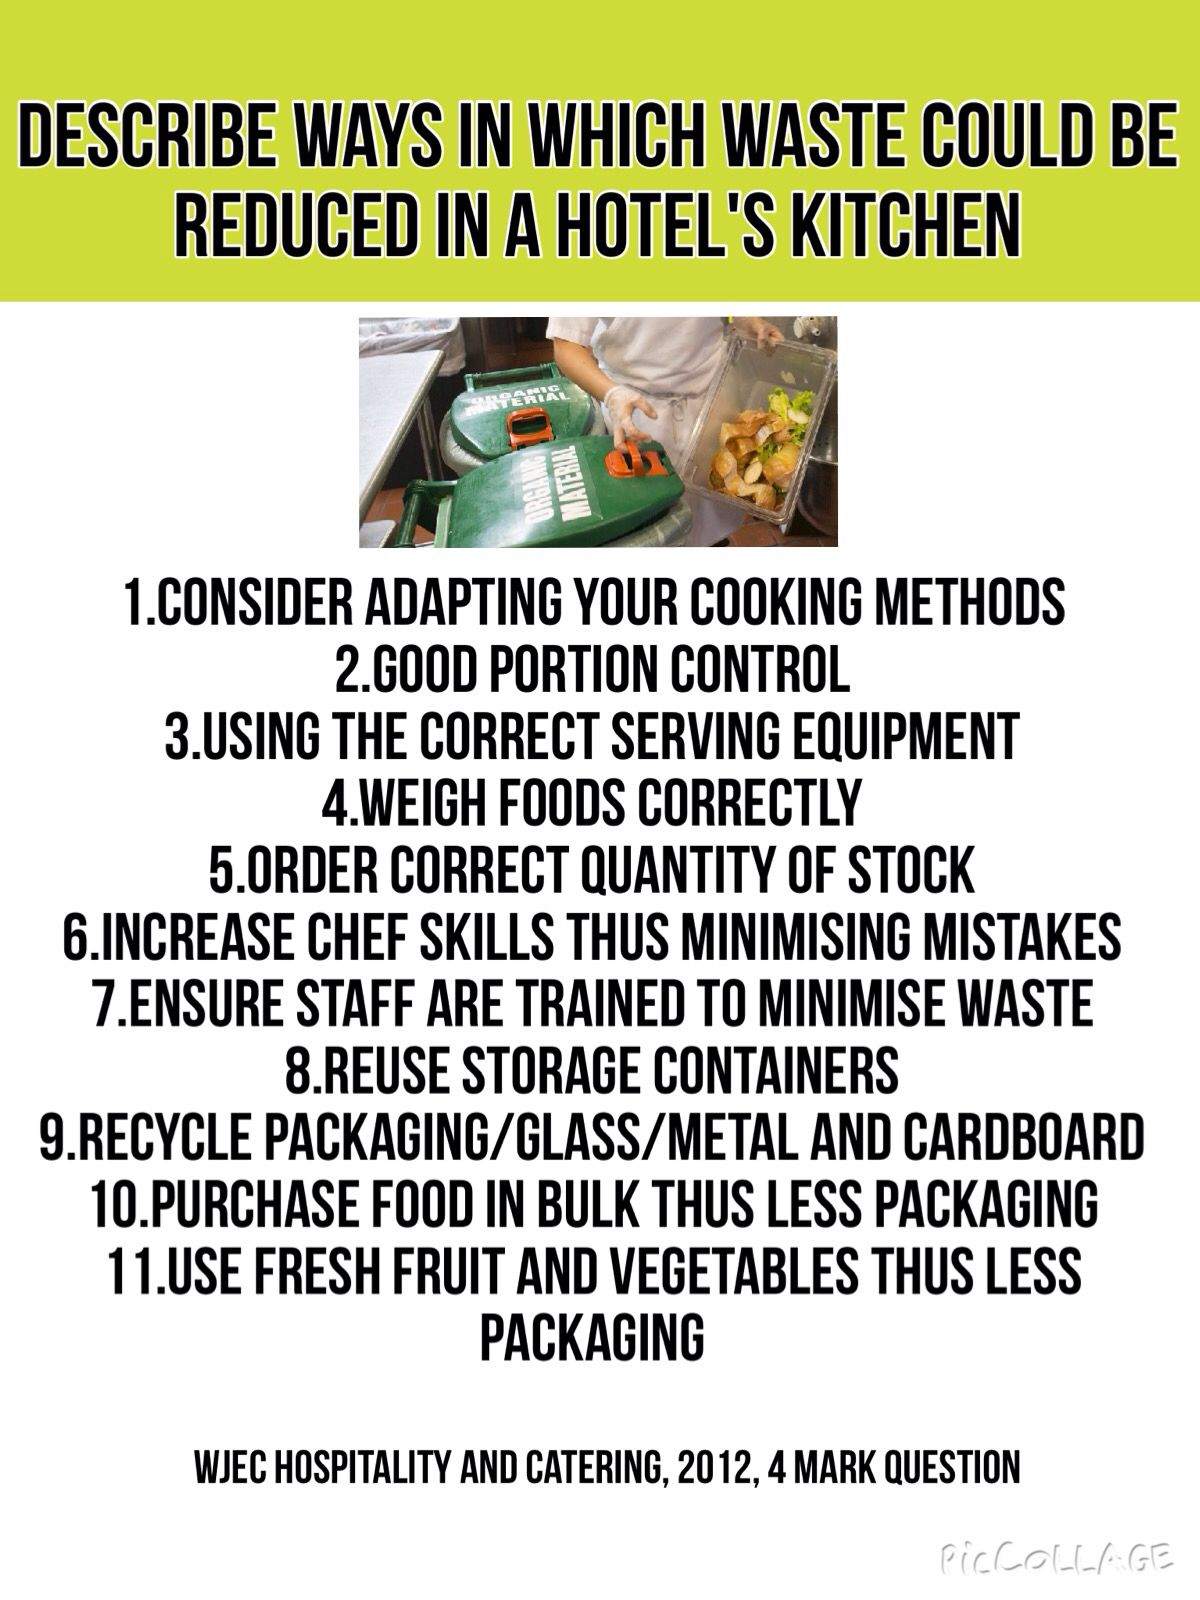 Reduce Waste Hotel Kitchen WJEC Catering & Hospitality